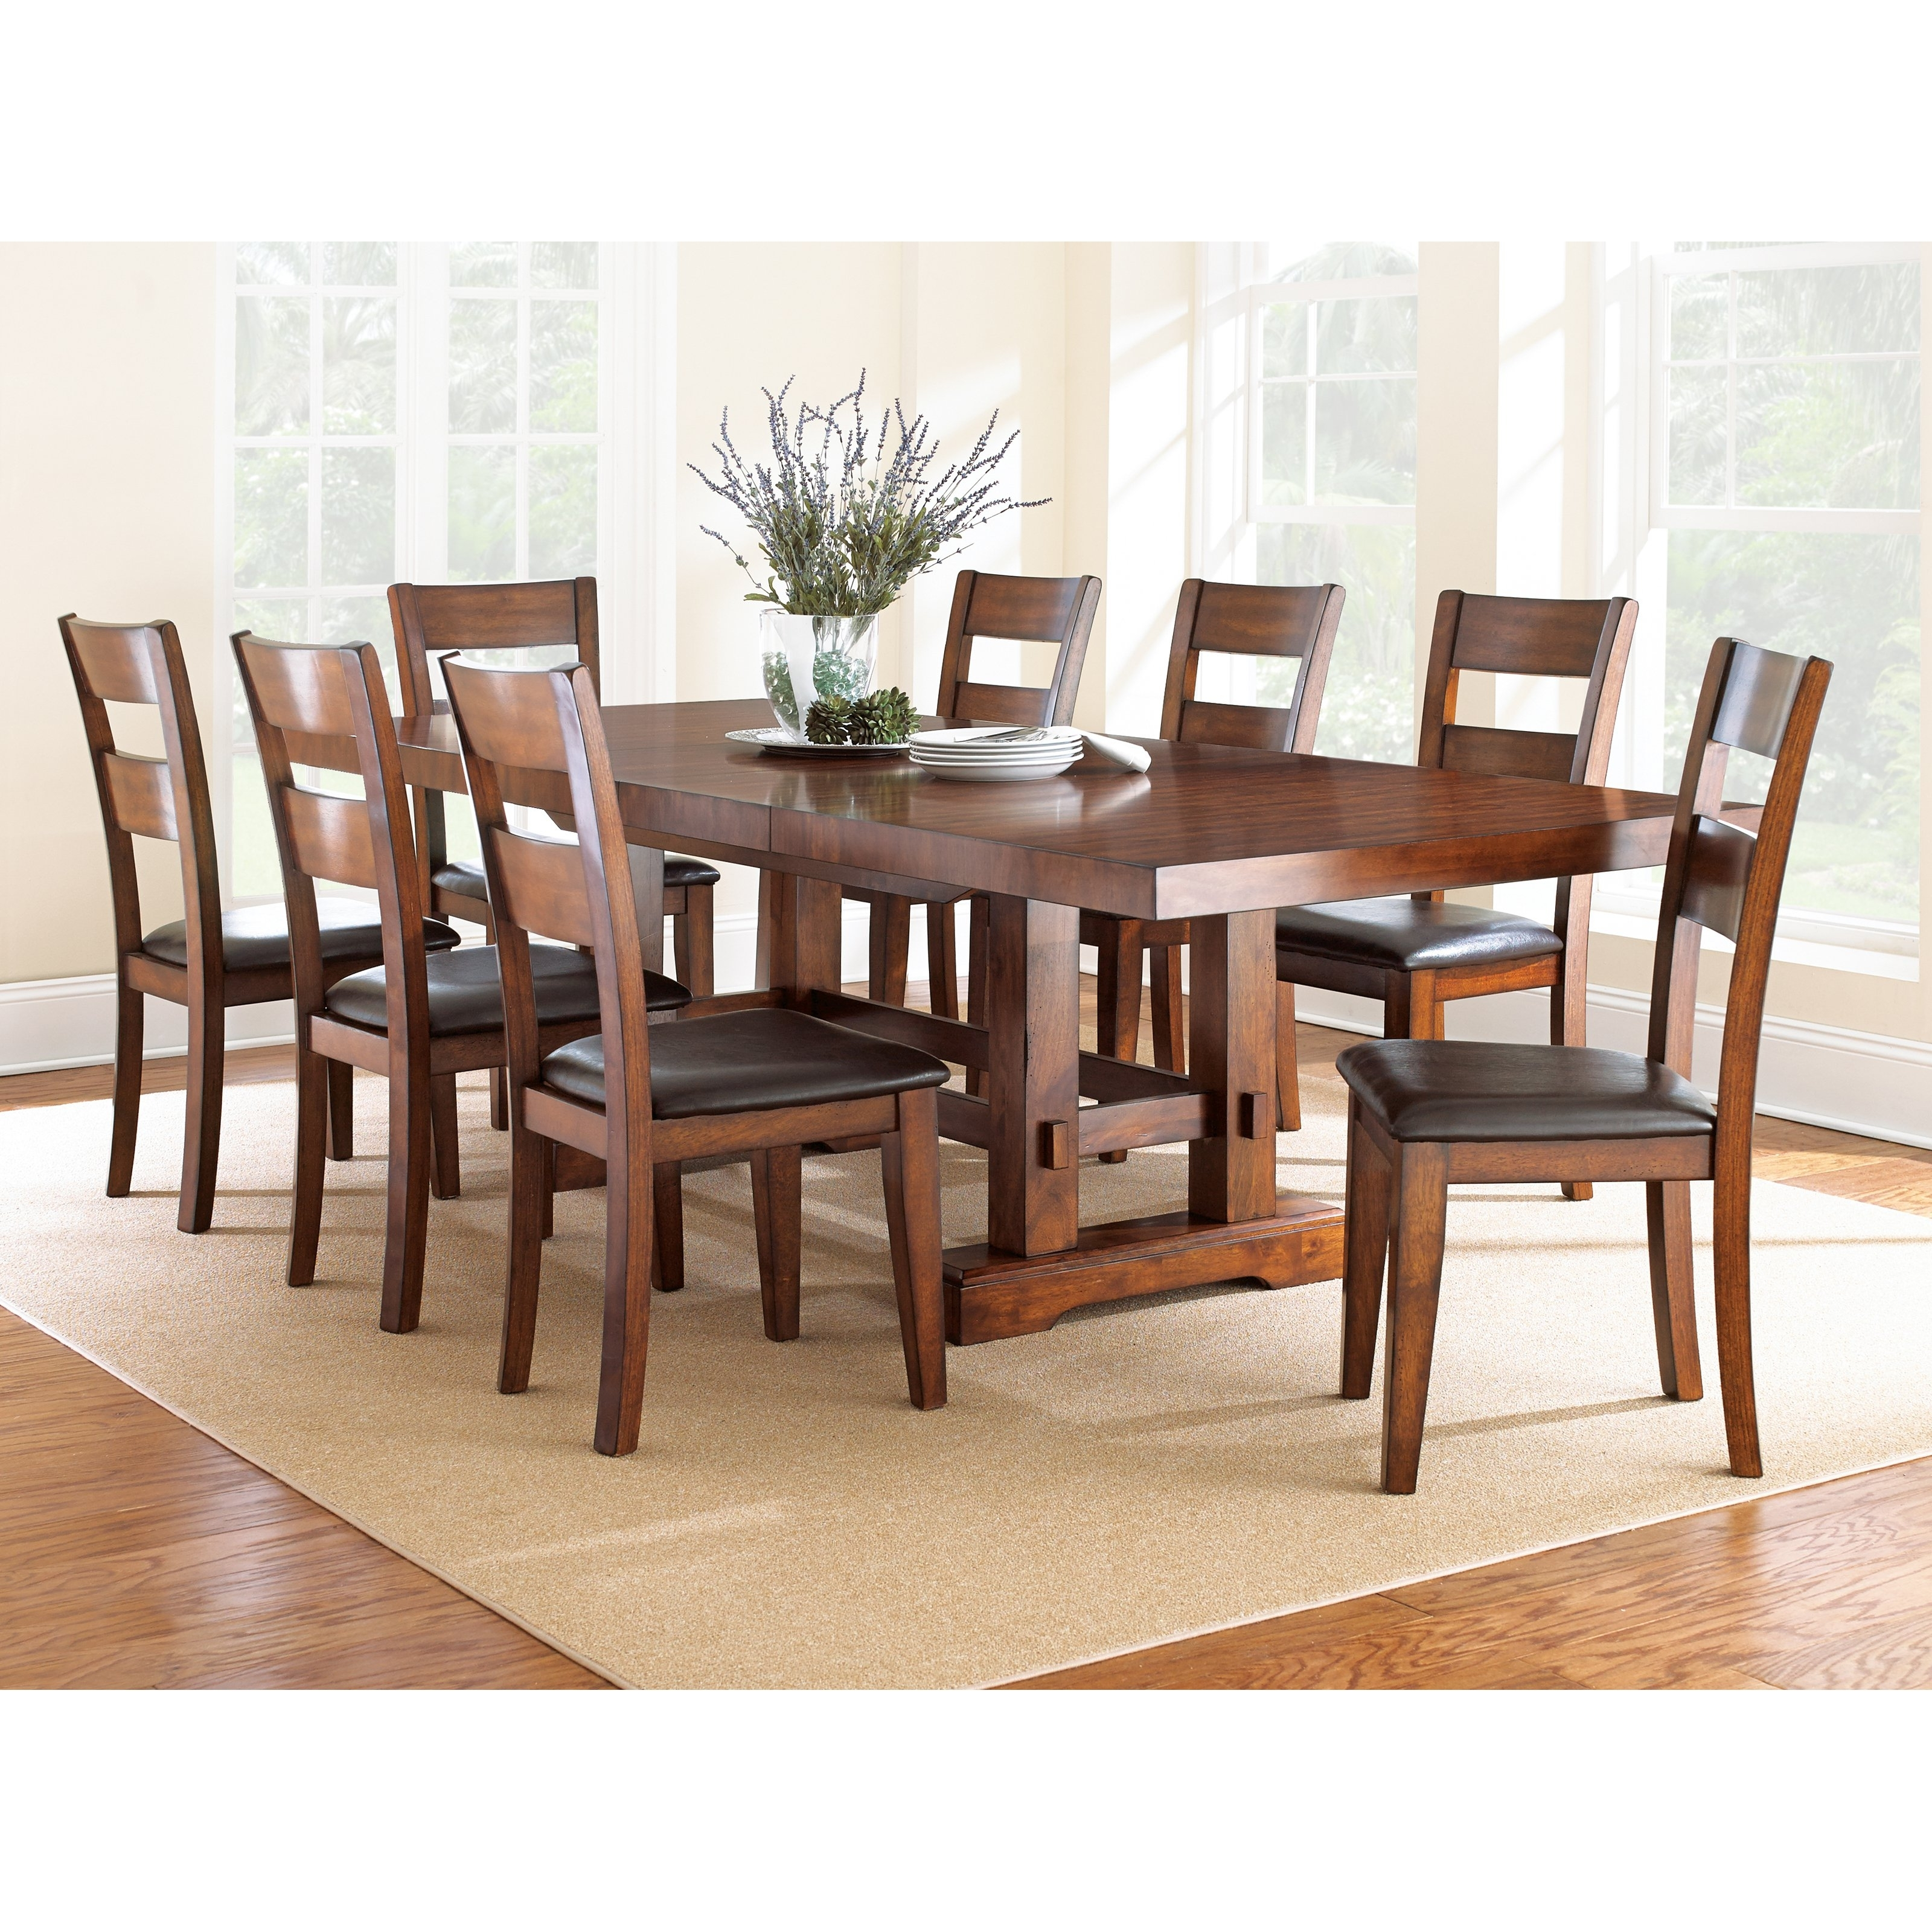 Dining Tables Set For 8 Intended For Newest Steve Silver Zappa 9 Piece Dining Table Set Medium Matching Bar (View 5 of 25)